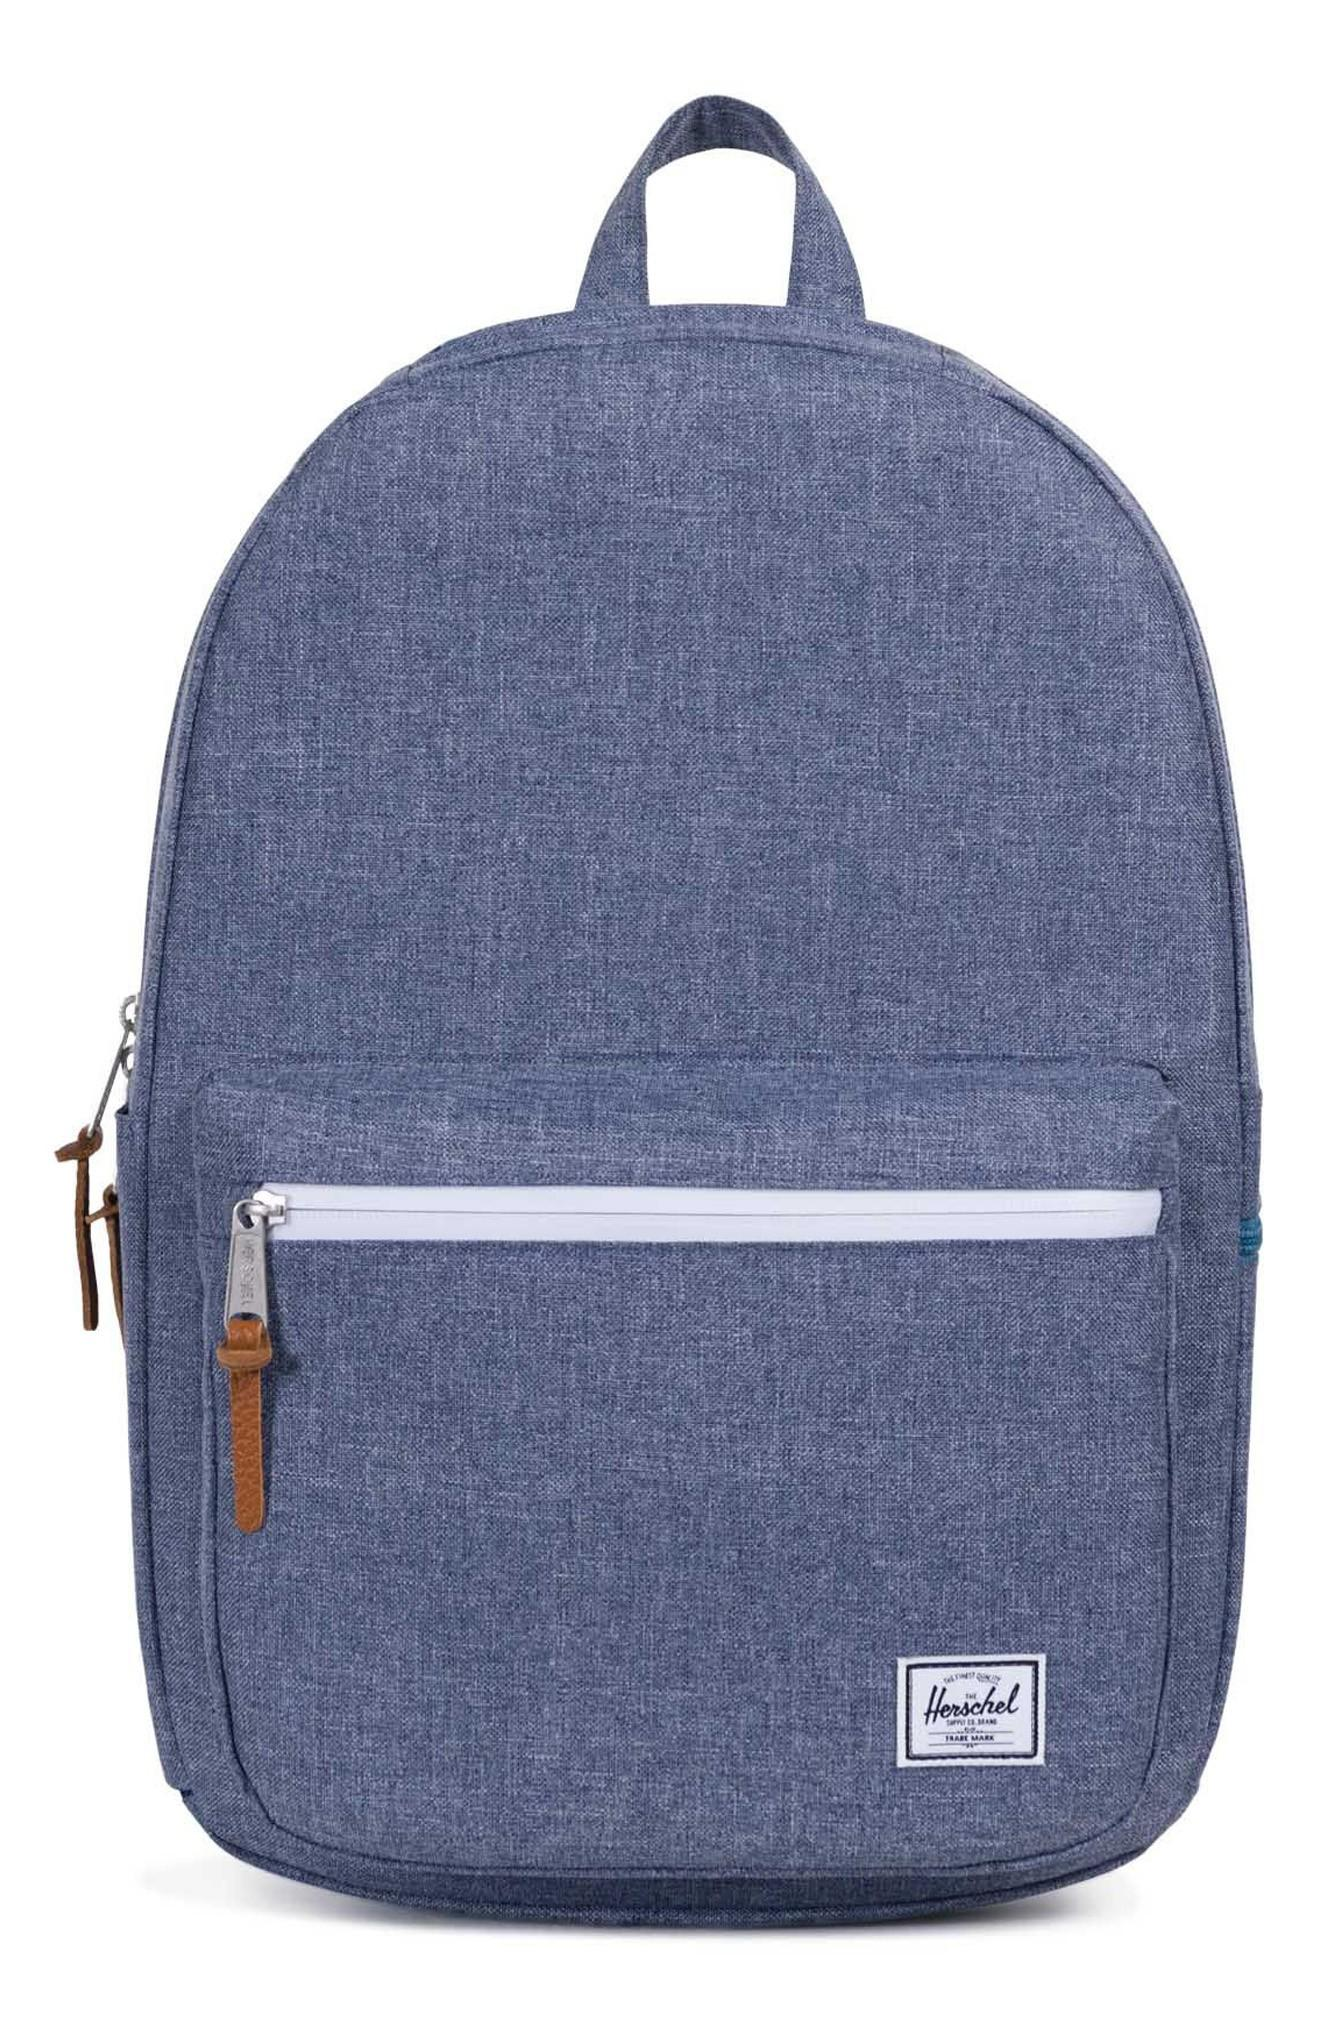 f6b0a0833e Herschel Supply Co. Harrison Backpack - Blue In Dark Chambray Crosshatch